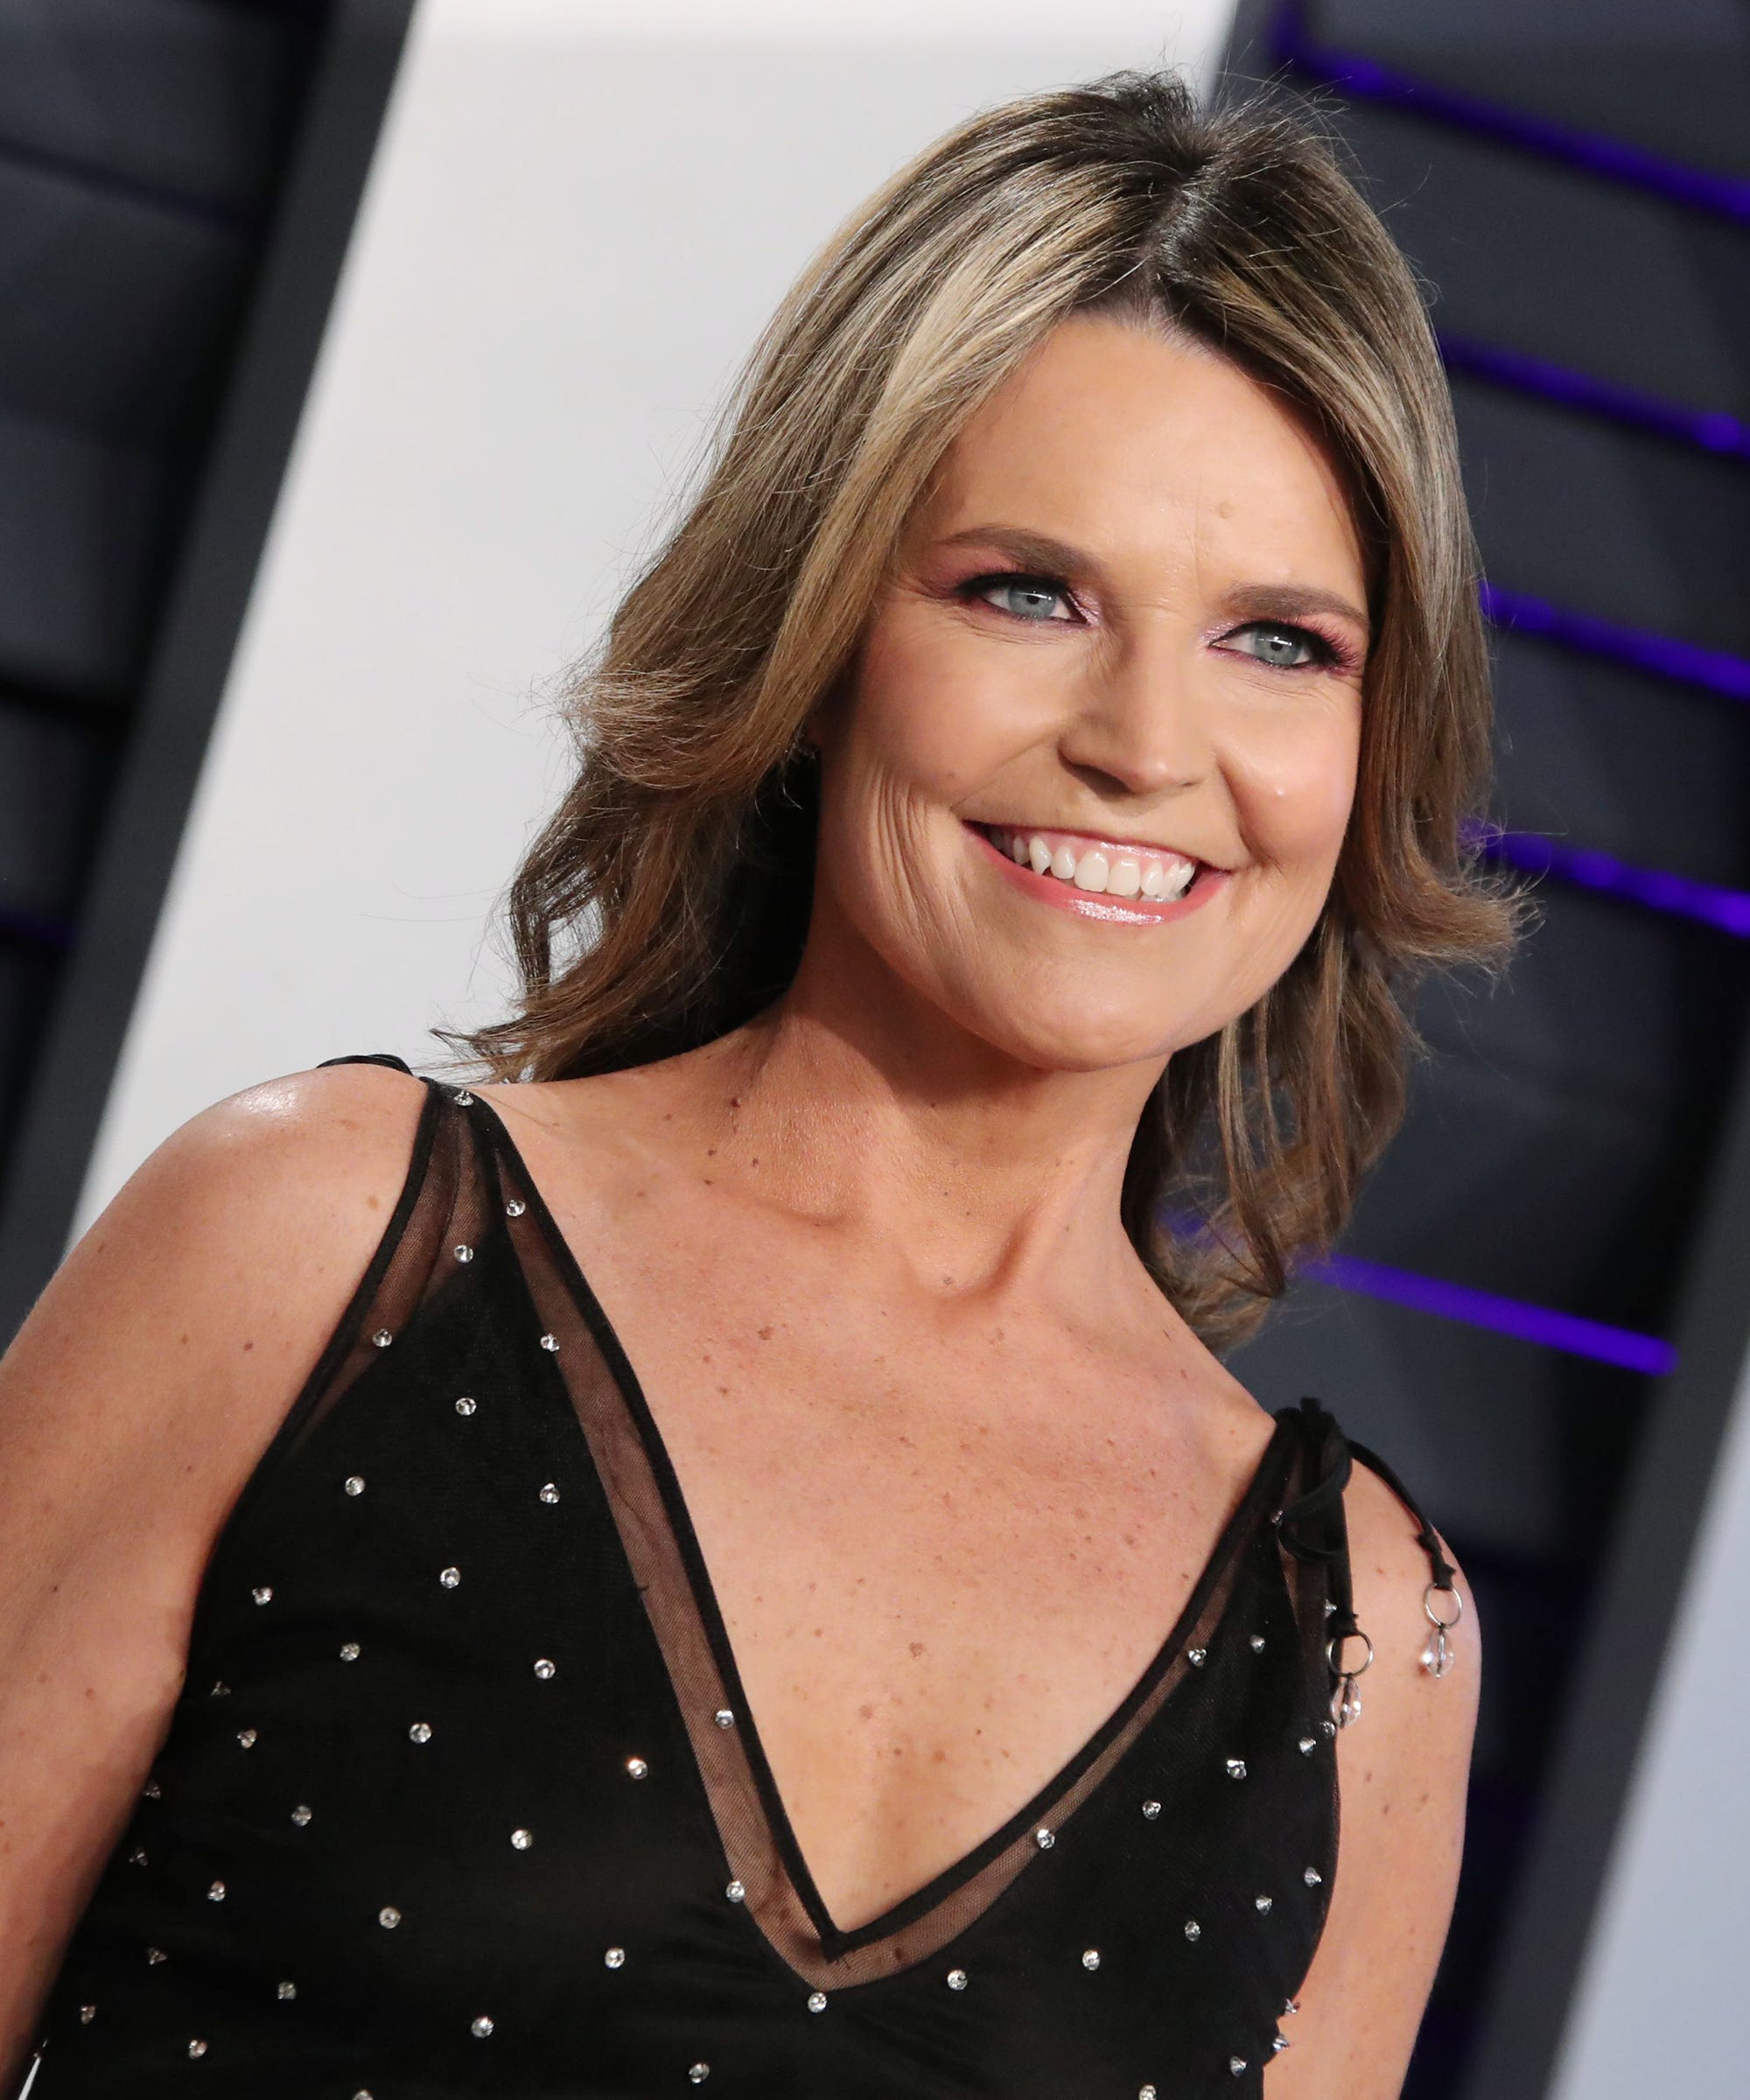 Savannah Guthrie Had Second Child Through IVF